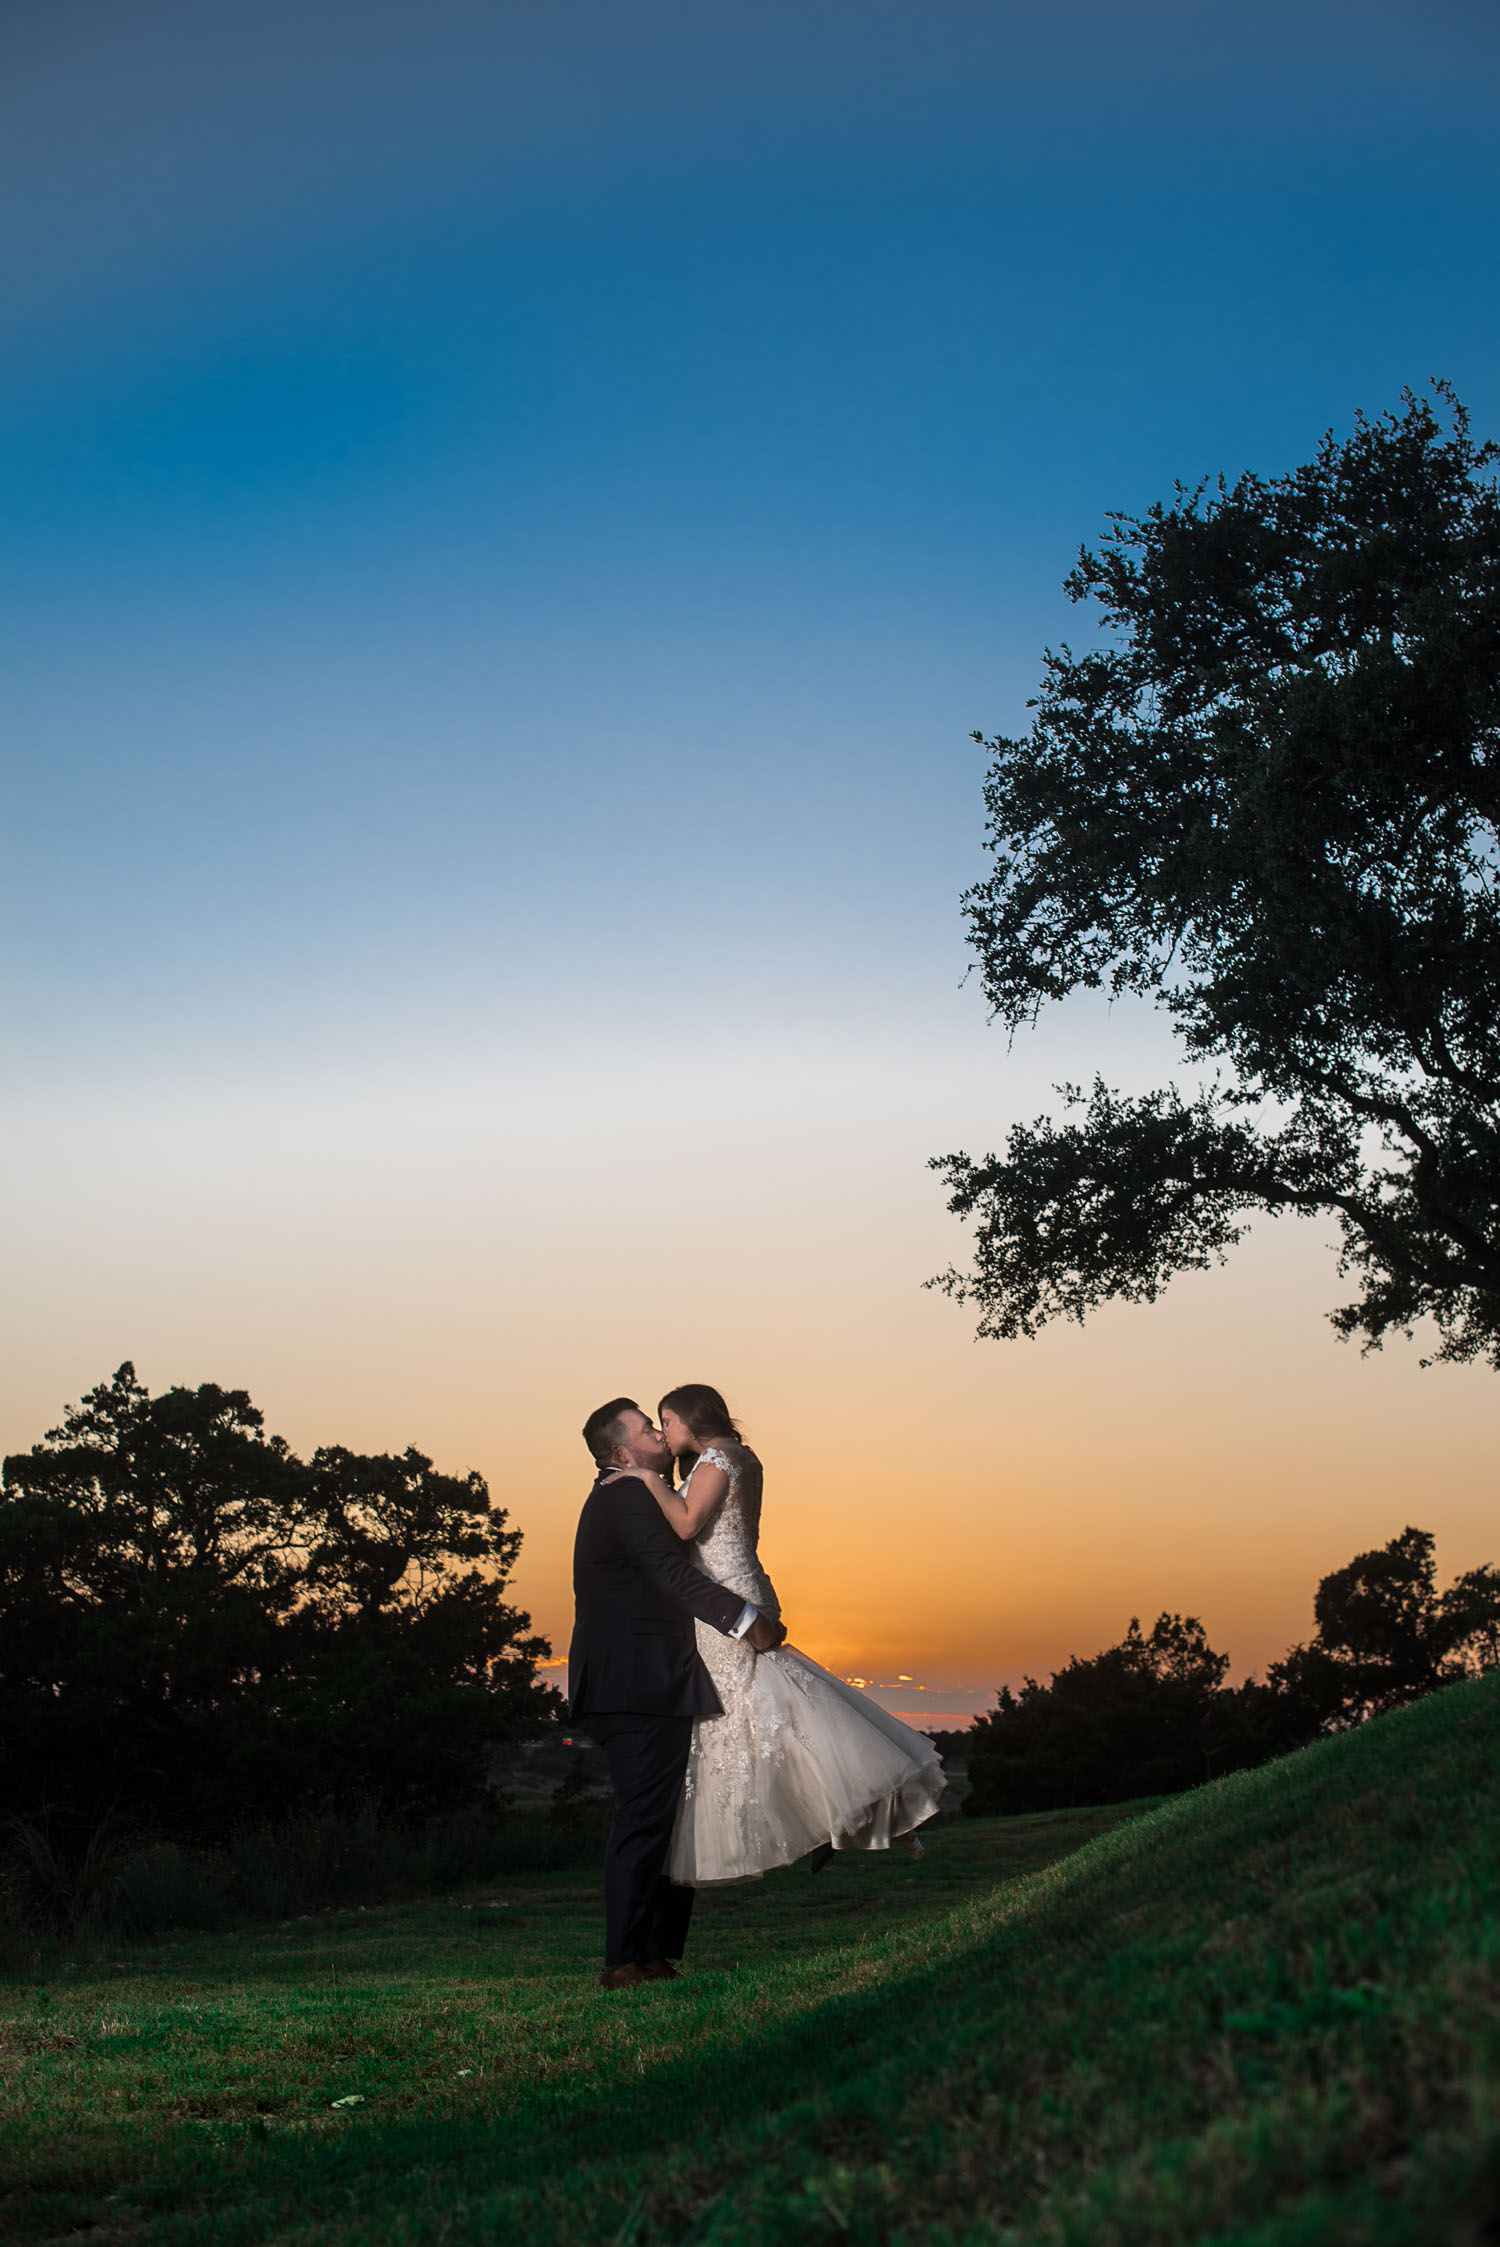 Hinton Wedding at Canyonwood Ridge Dripping Springs Texas Wedding Photography-160.jpg